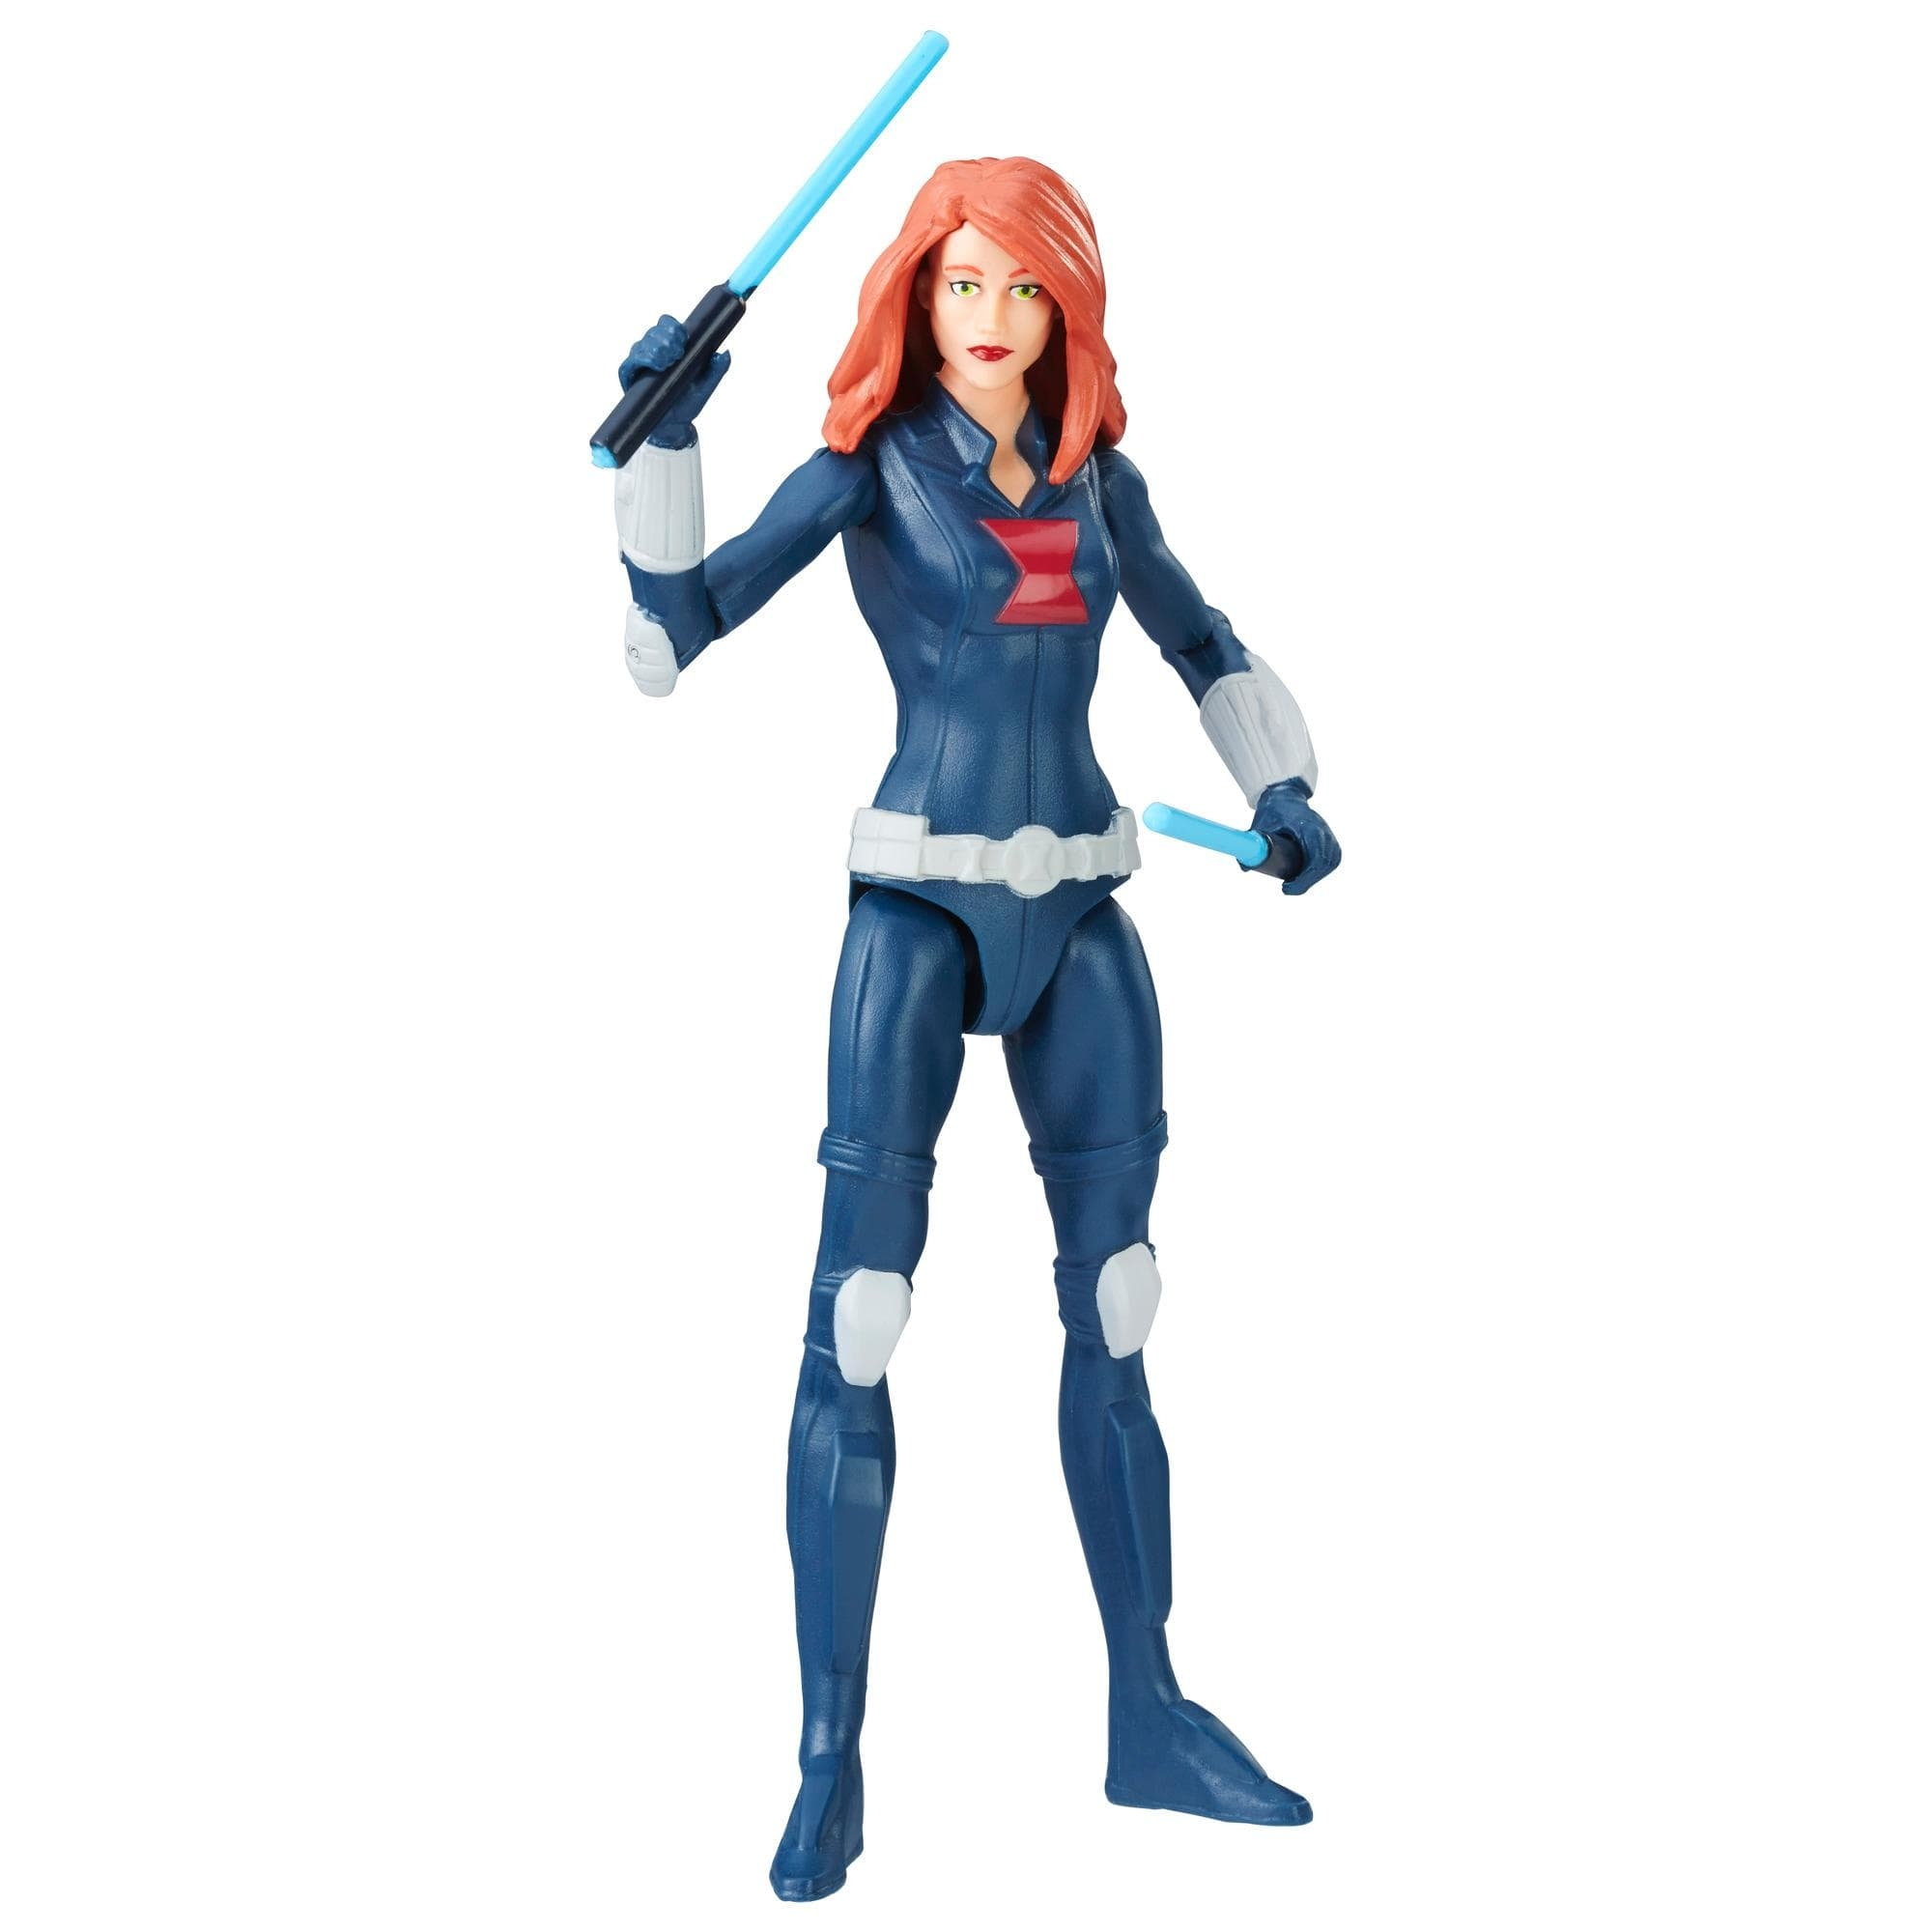 figurina marvel avengers - black widow, 15 cm